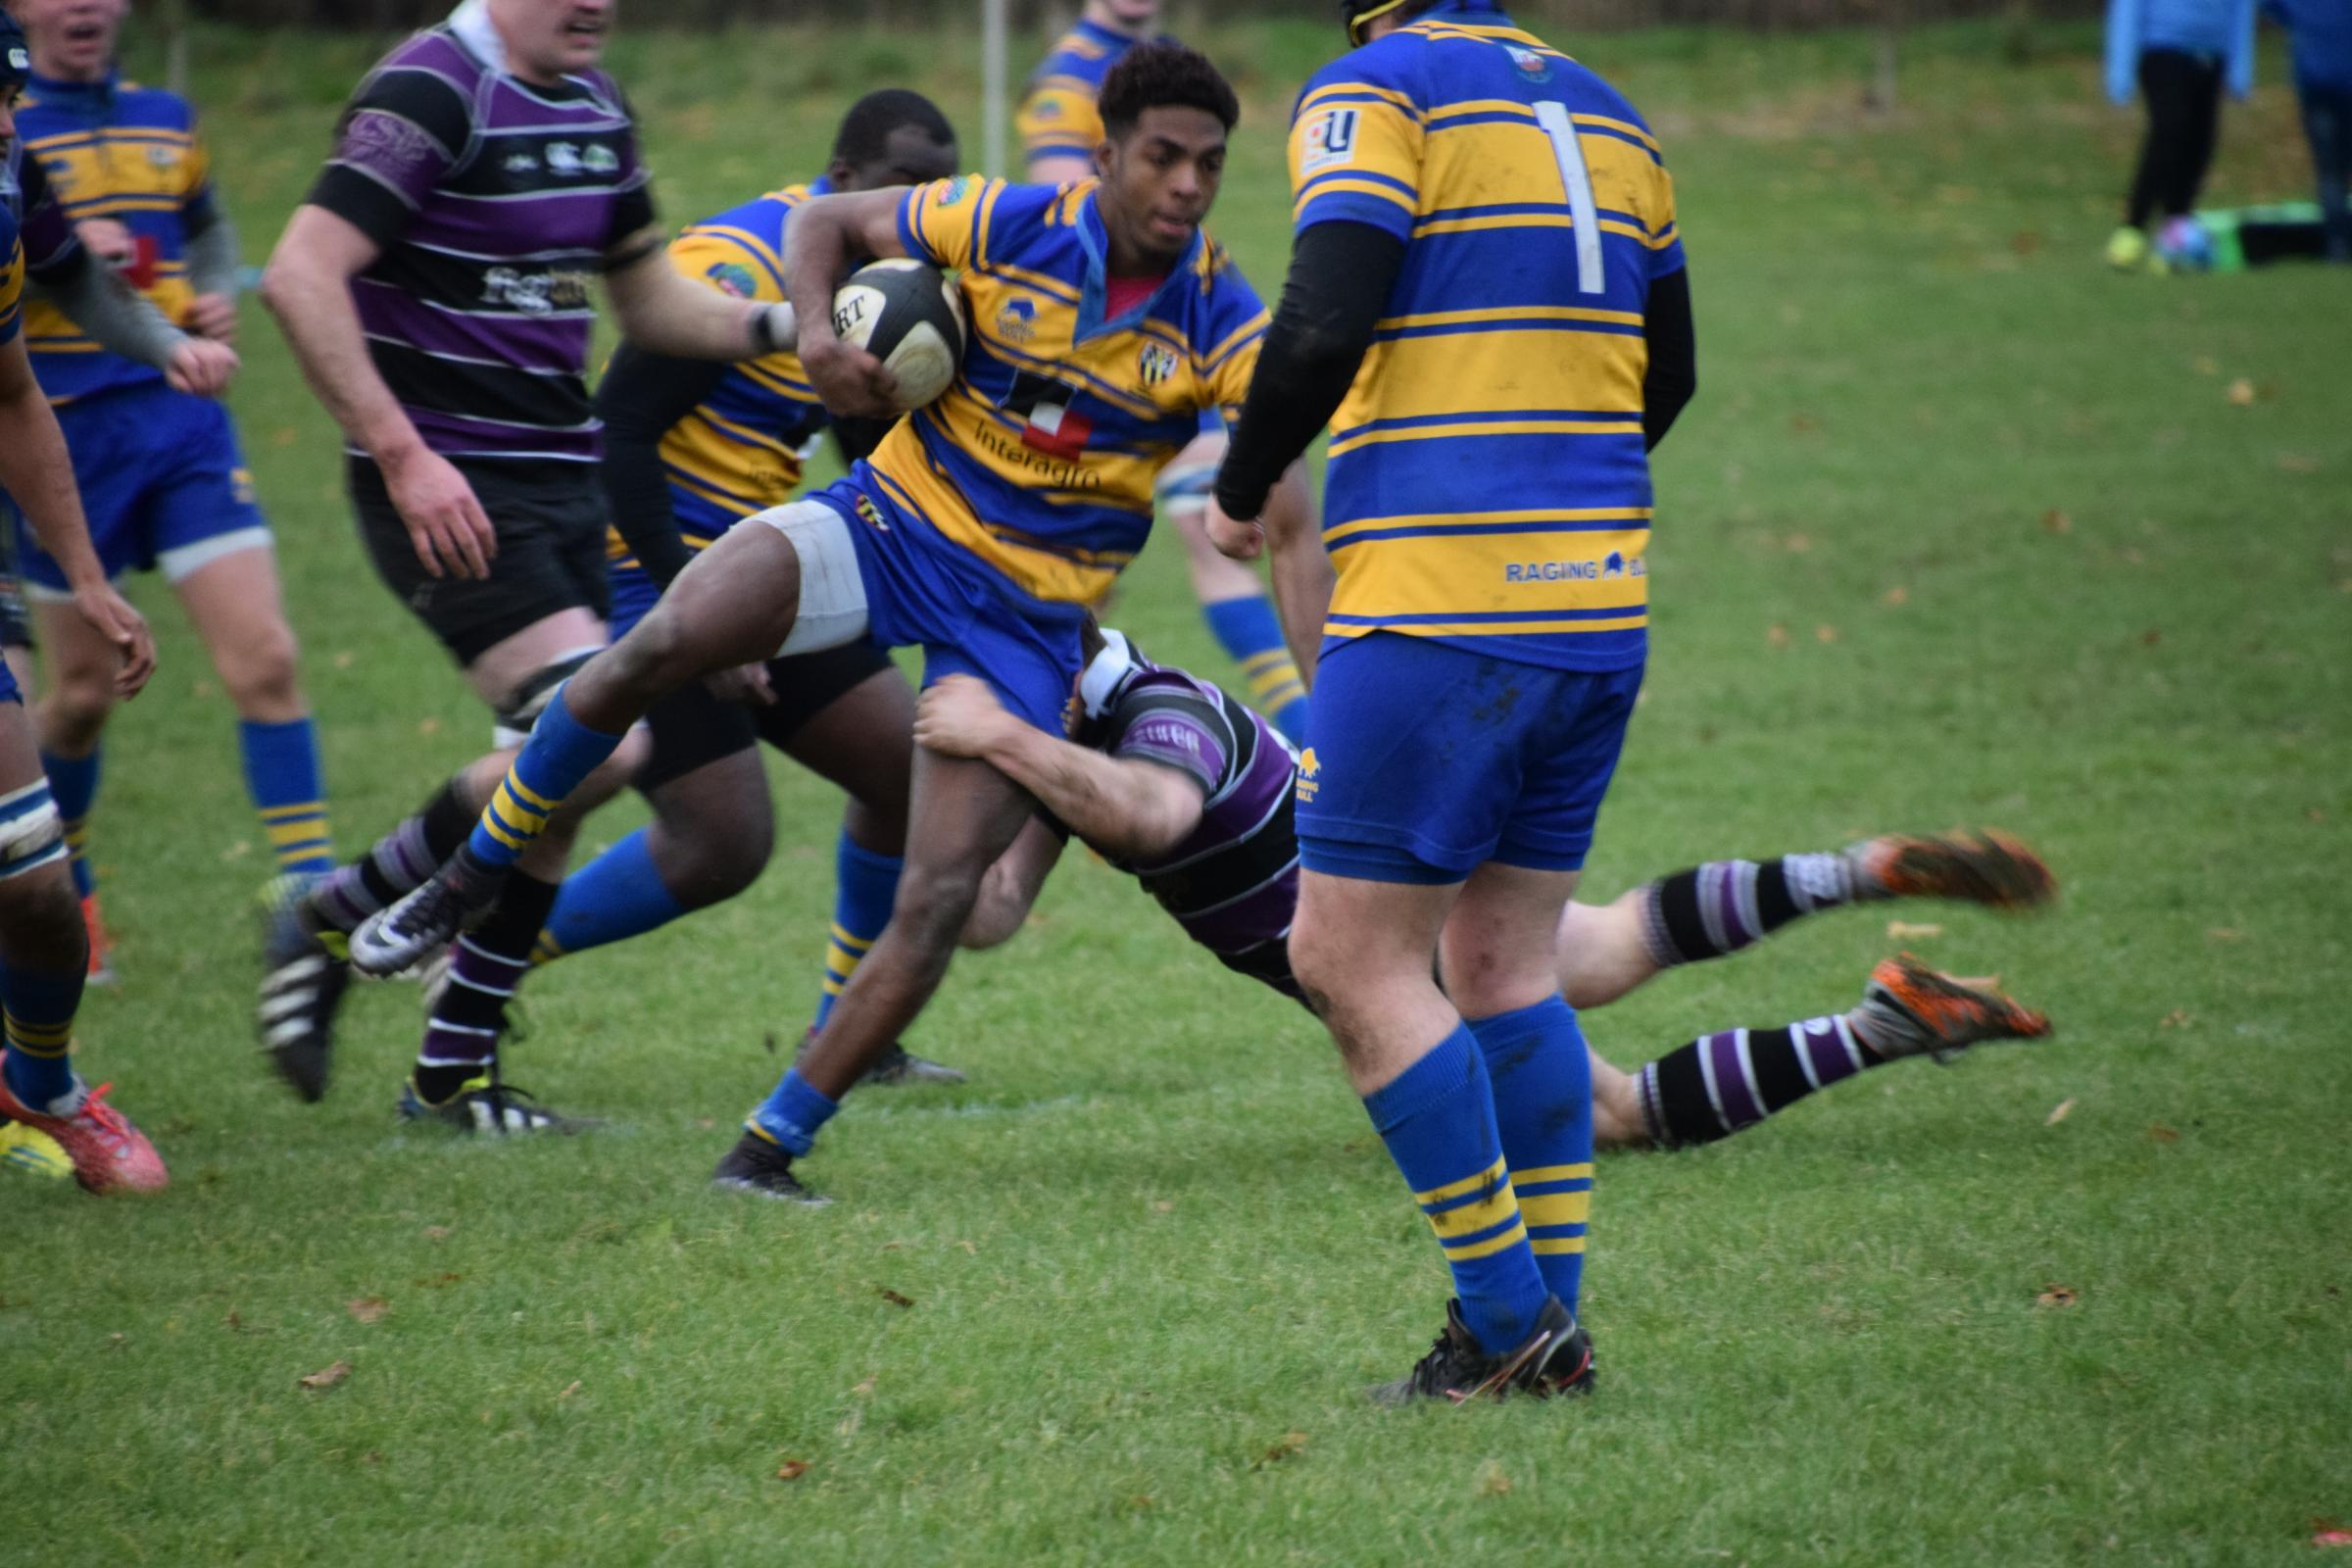 Cairo Sango shone for Hertforshire under-20s in their defeat to Lancashire.